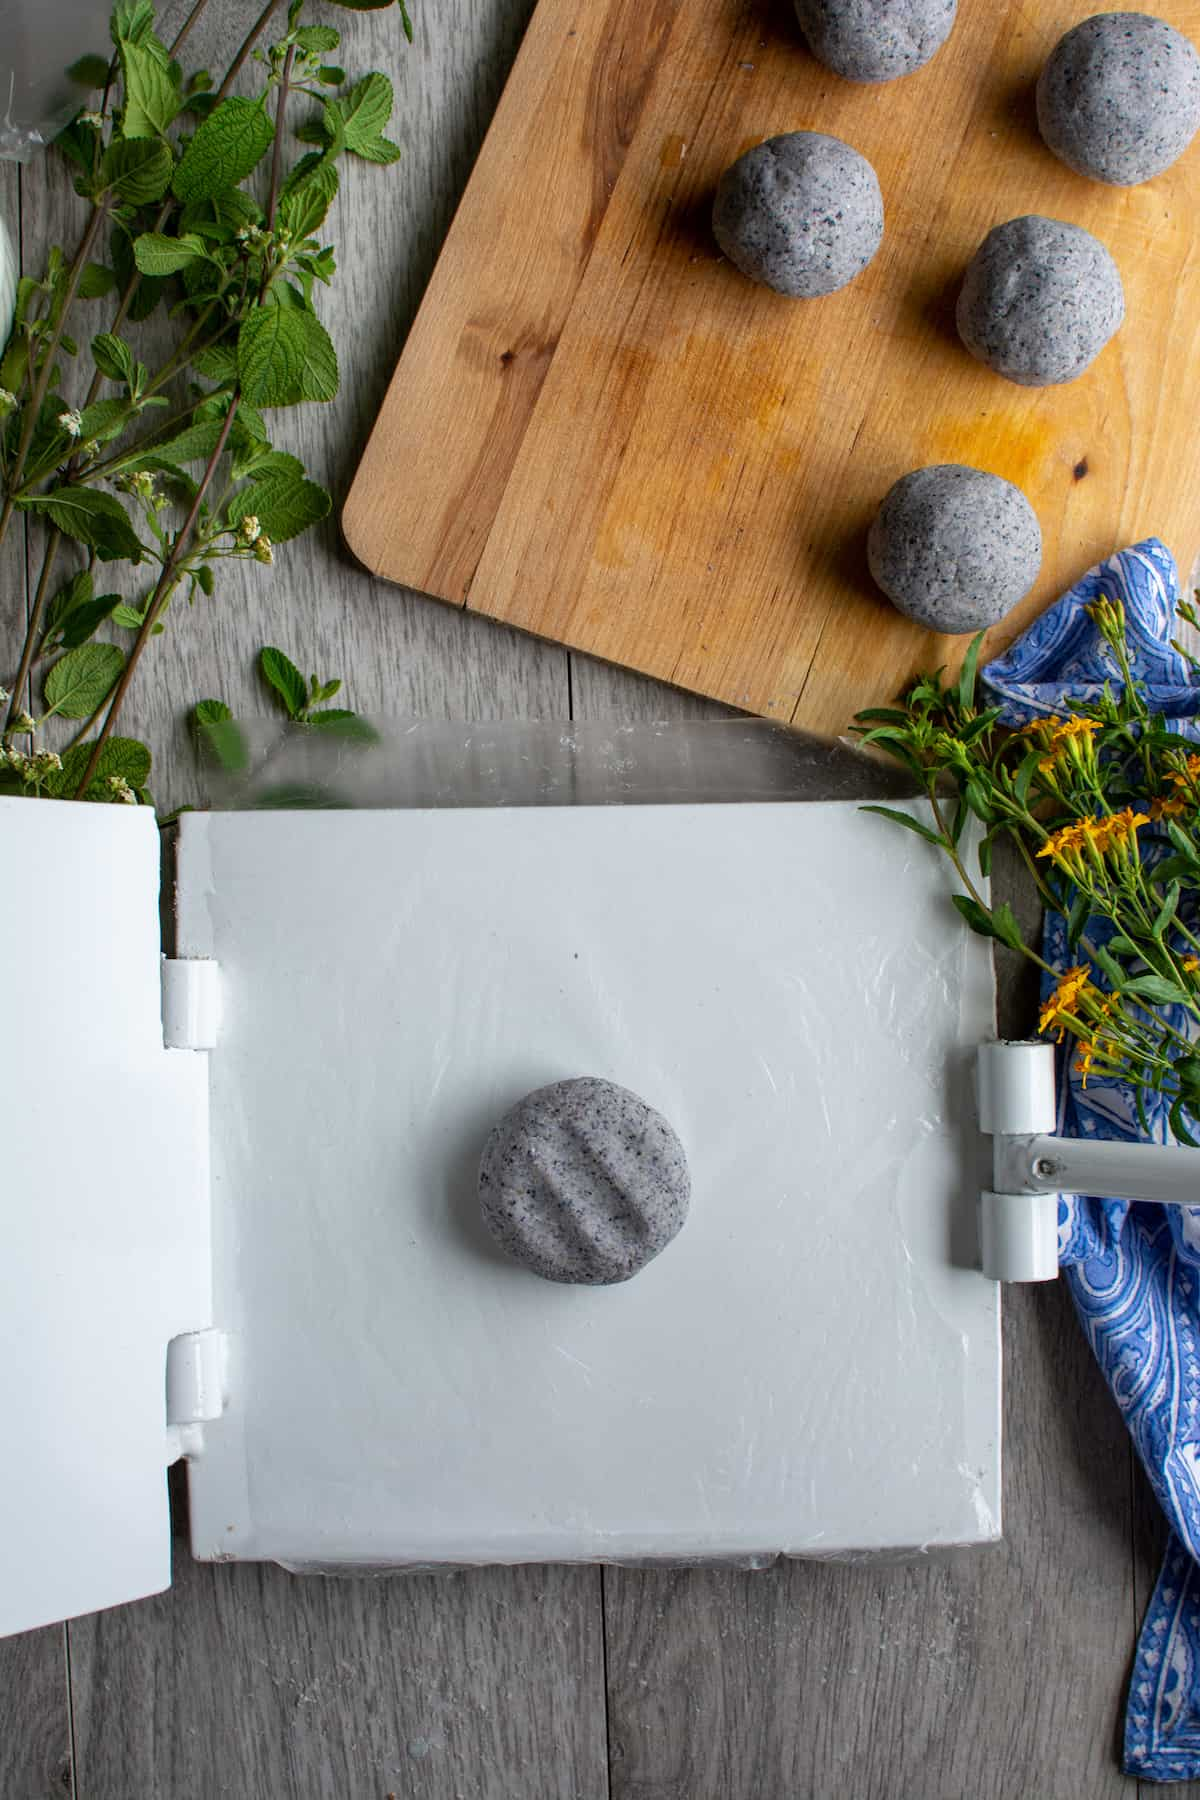 A flattened ball of masa dough on a white tortilla press with several other balls of blue corn masa on a wood cutting board next to it.